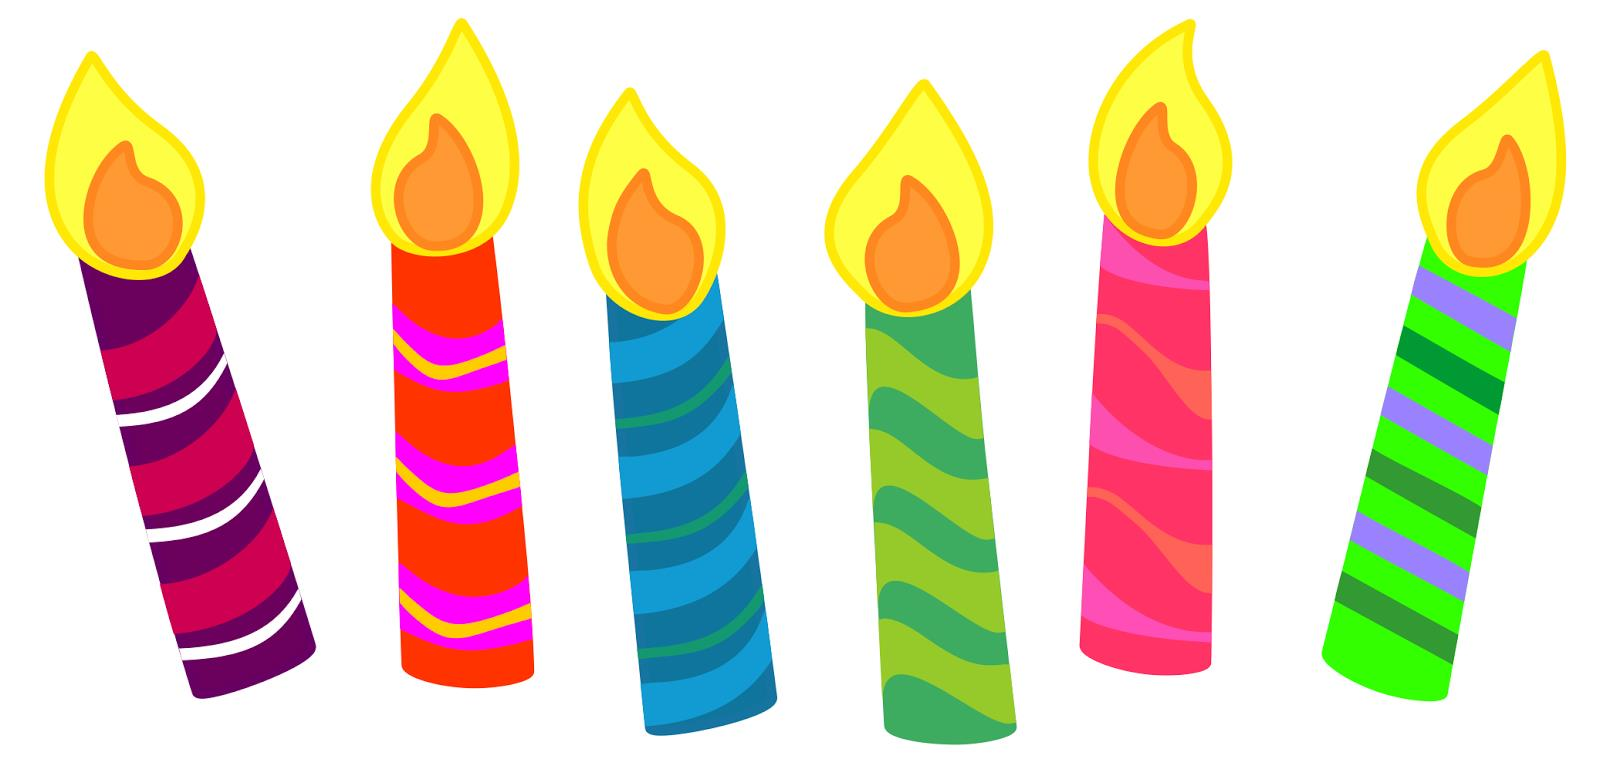 birthday candle clipart ; Candles-birthday-candle-clipart-kid